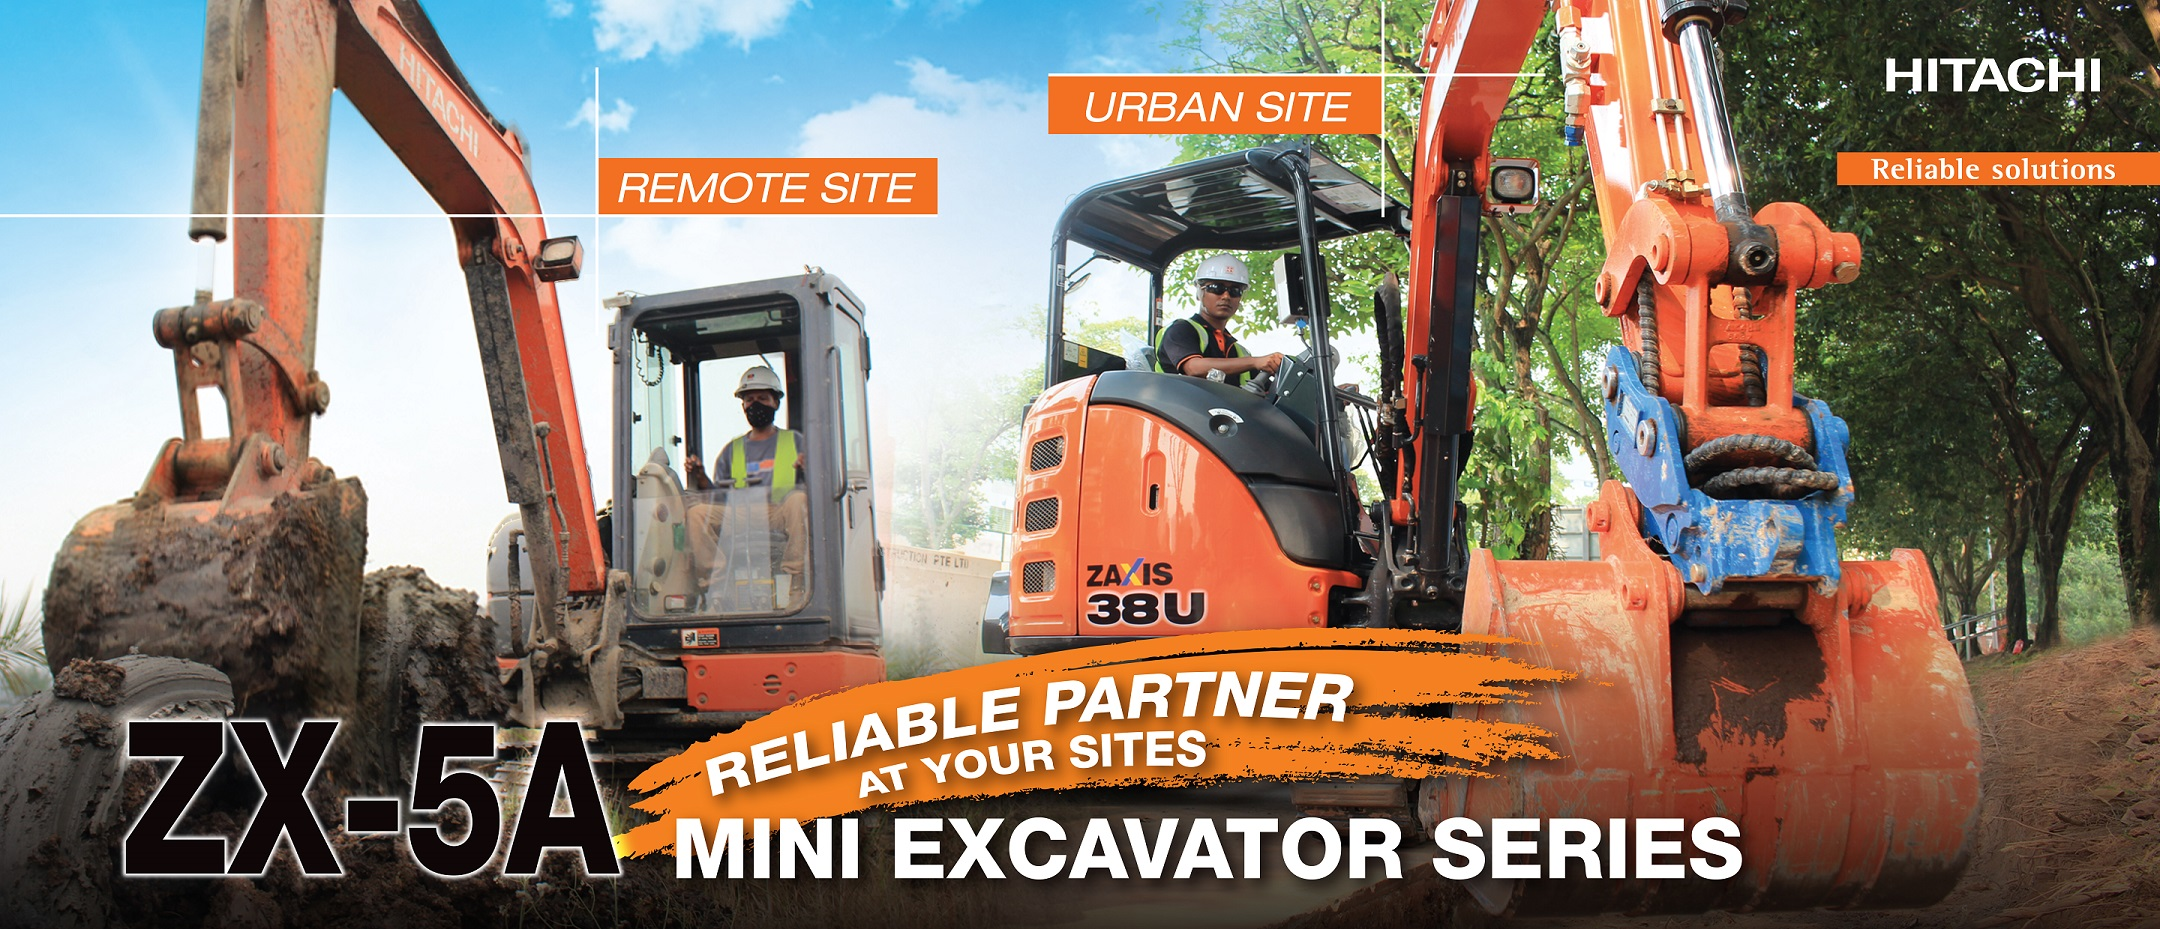 Hitachi Construction Machinery Malaysia